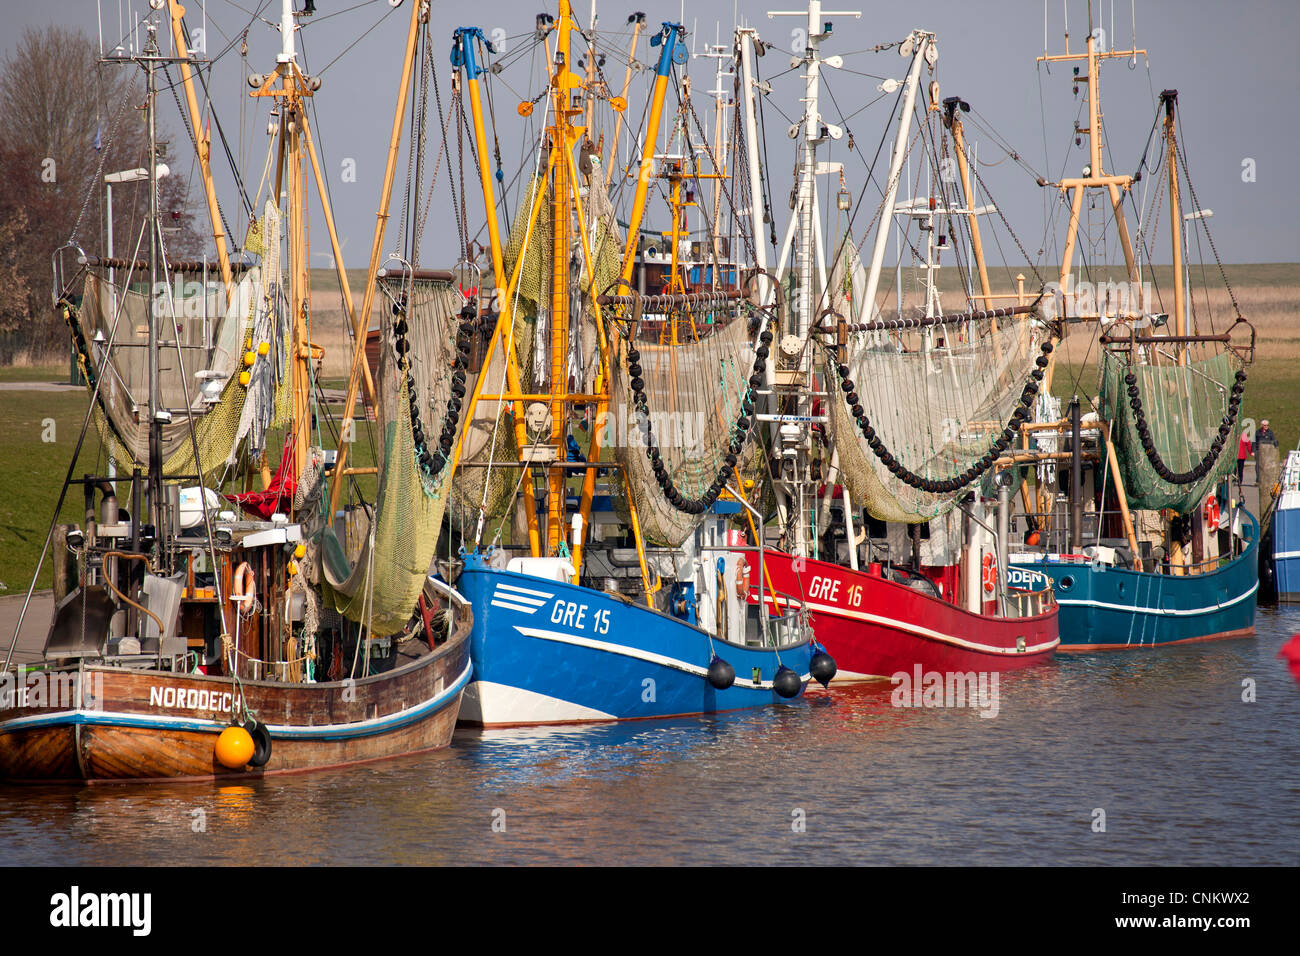 Shrimp cutters in the harbour of Greetsiel, East Frisia, Lower Saxony, Germany - Stock Image